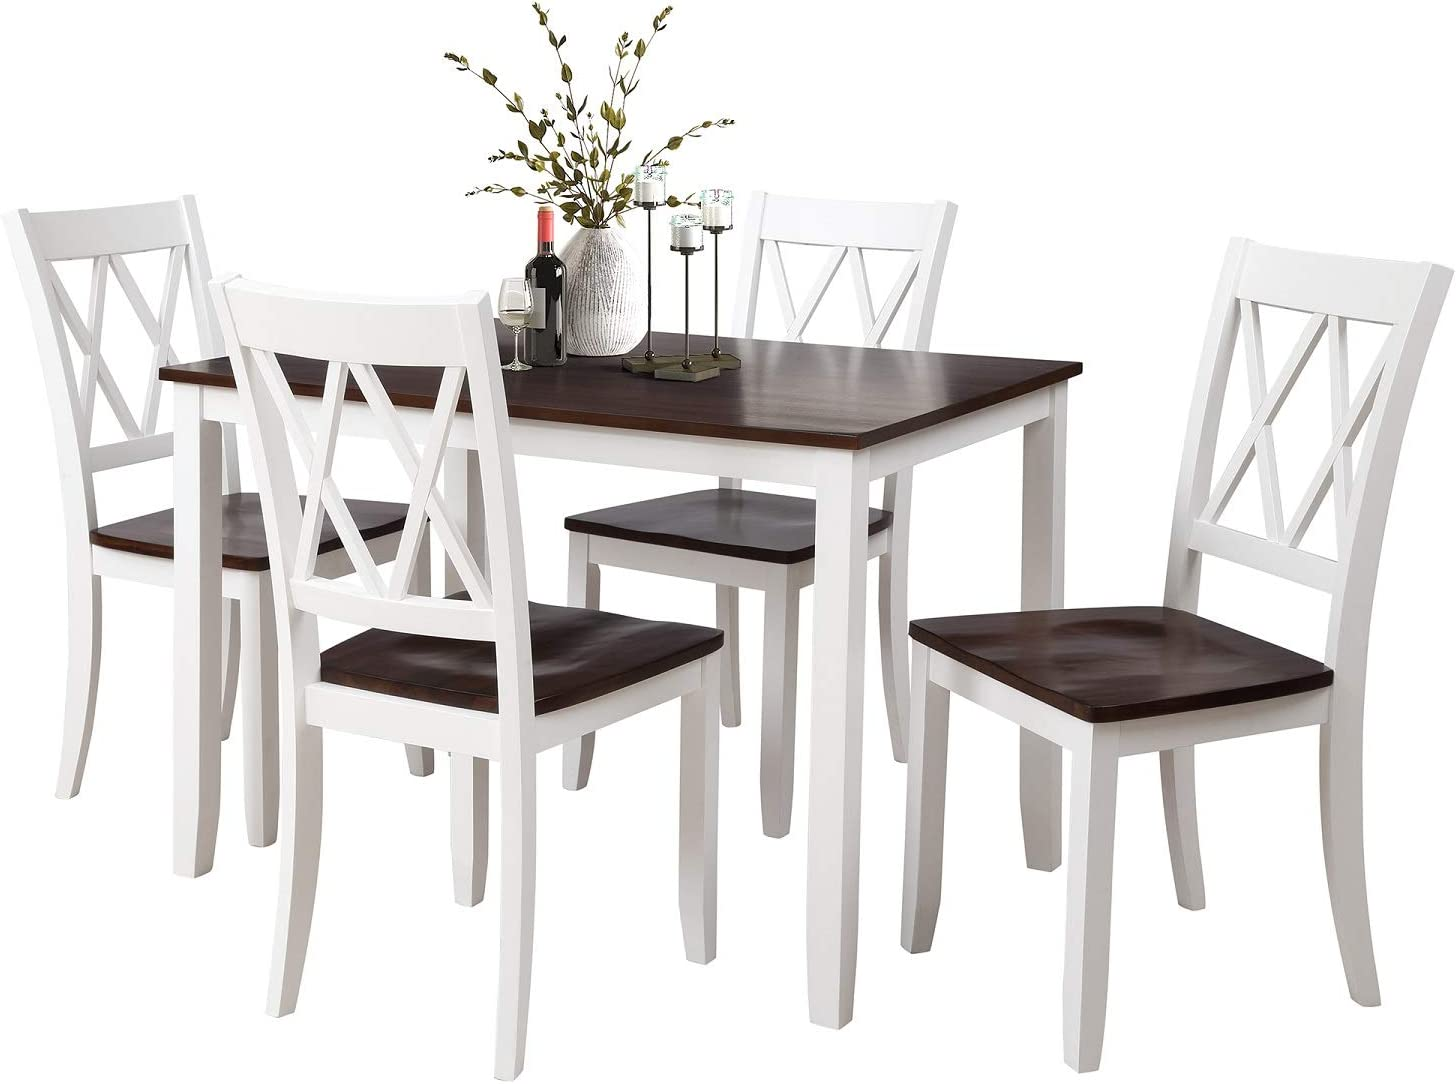 Rhomtree Dining Room Table and Chairs 5Pieces Wood Kitchen Dining Set Dinette Set for 4 Person White